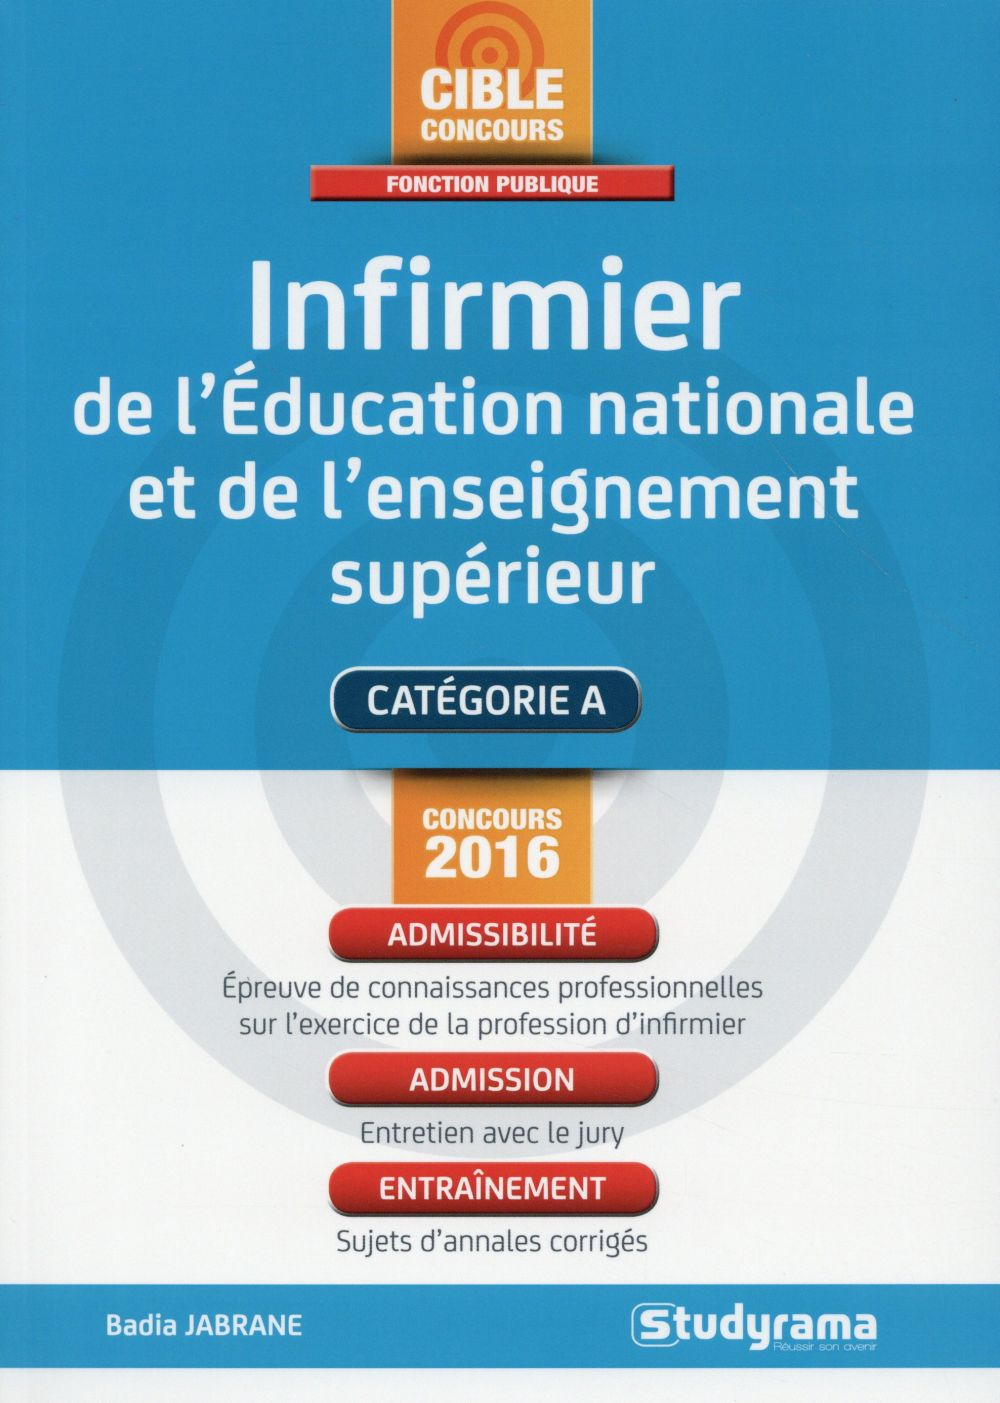 INFIRMIERE DE L'EDUCATION NATIONALE ET DE L'ENSEIGNEMENT SUPERIEUR